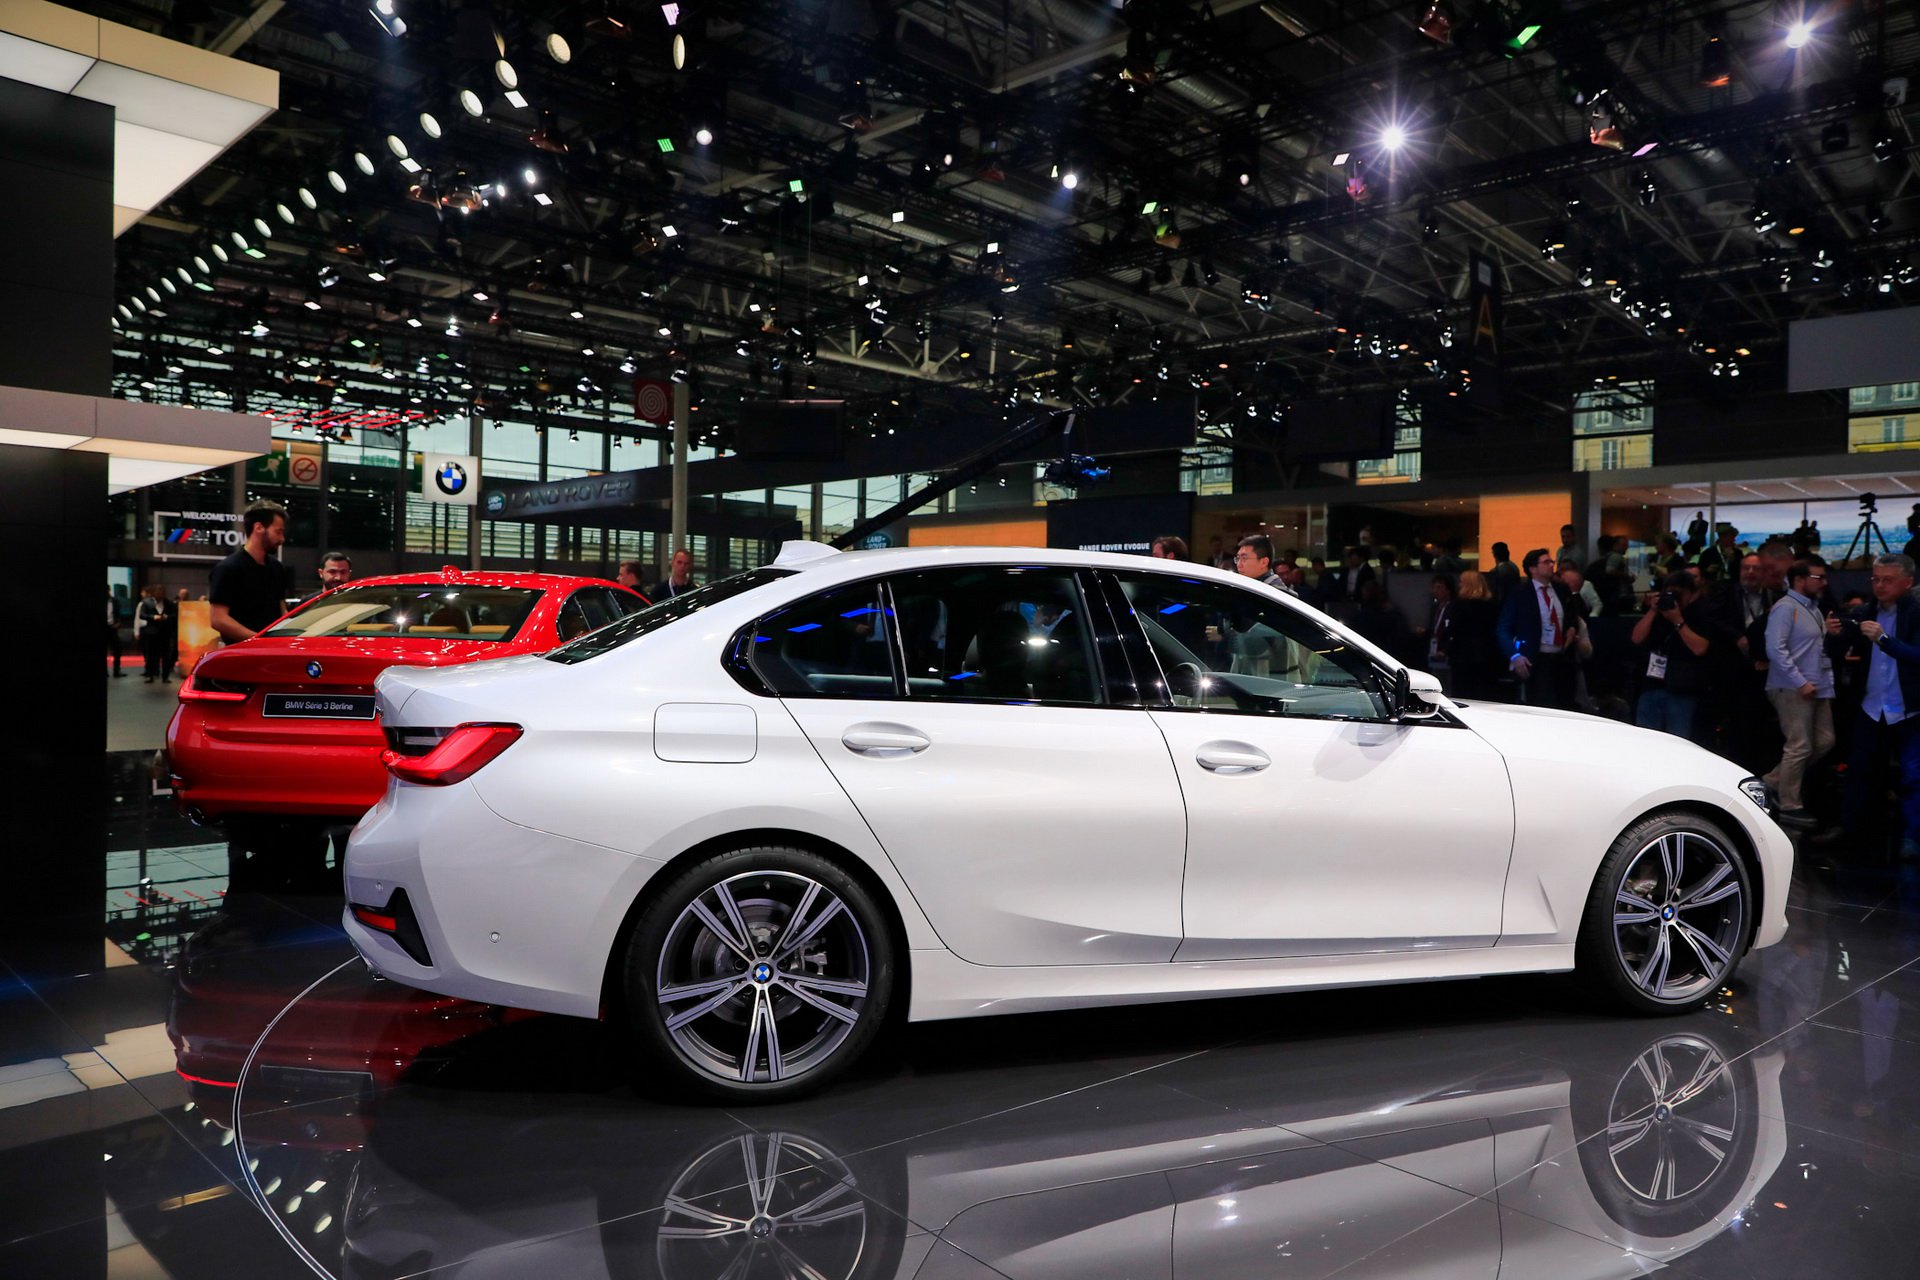 2019-bmw-3-series-ra-mat-18.jpg